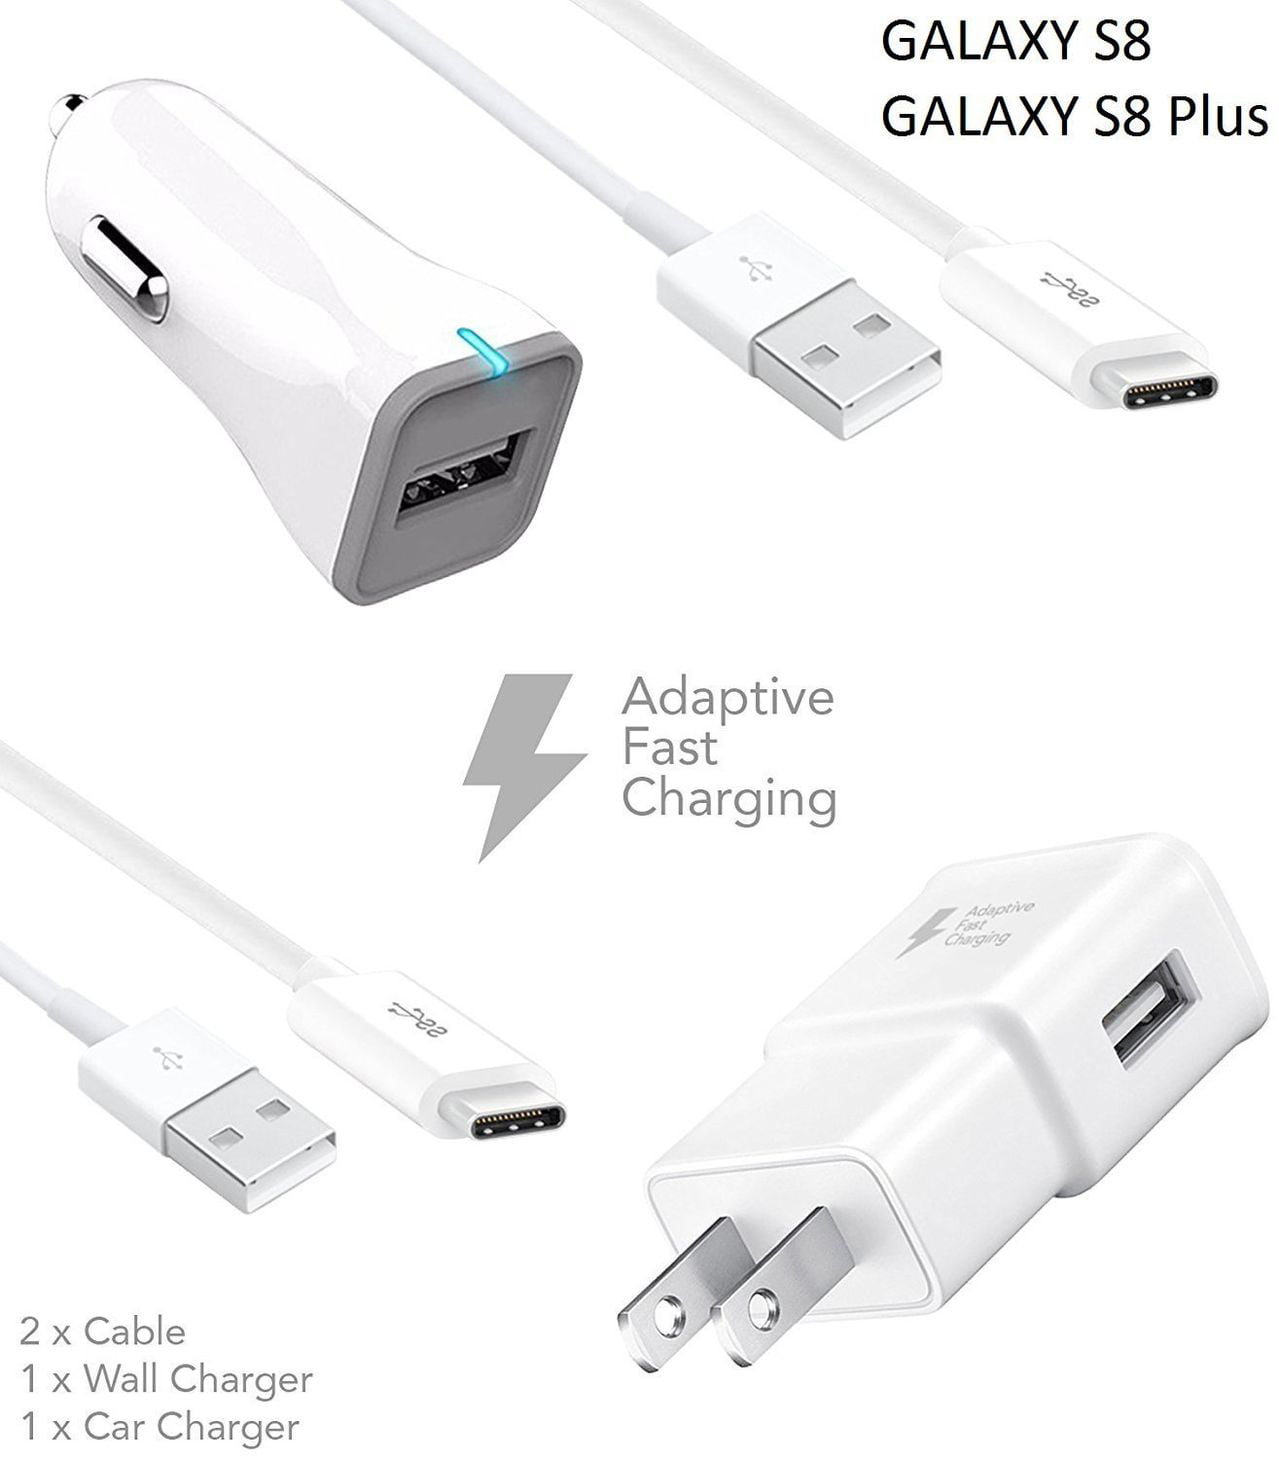 super specials cheapest price replicas Samsung Galaxy S8 / S8 Edge Charger! Adaptive Fast Charger Type-C Cable {2  Wall Chargers + 2 Type-C Cables} True Digital Adaptive Fast Charging uses  ...